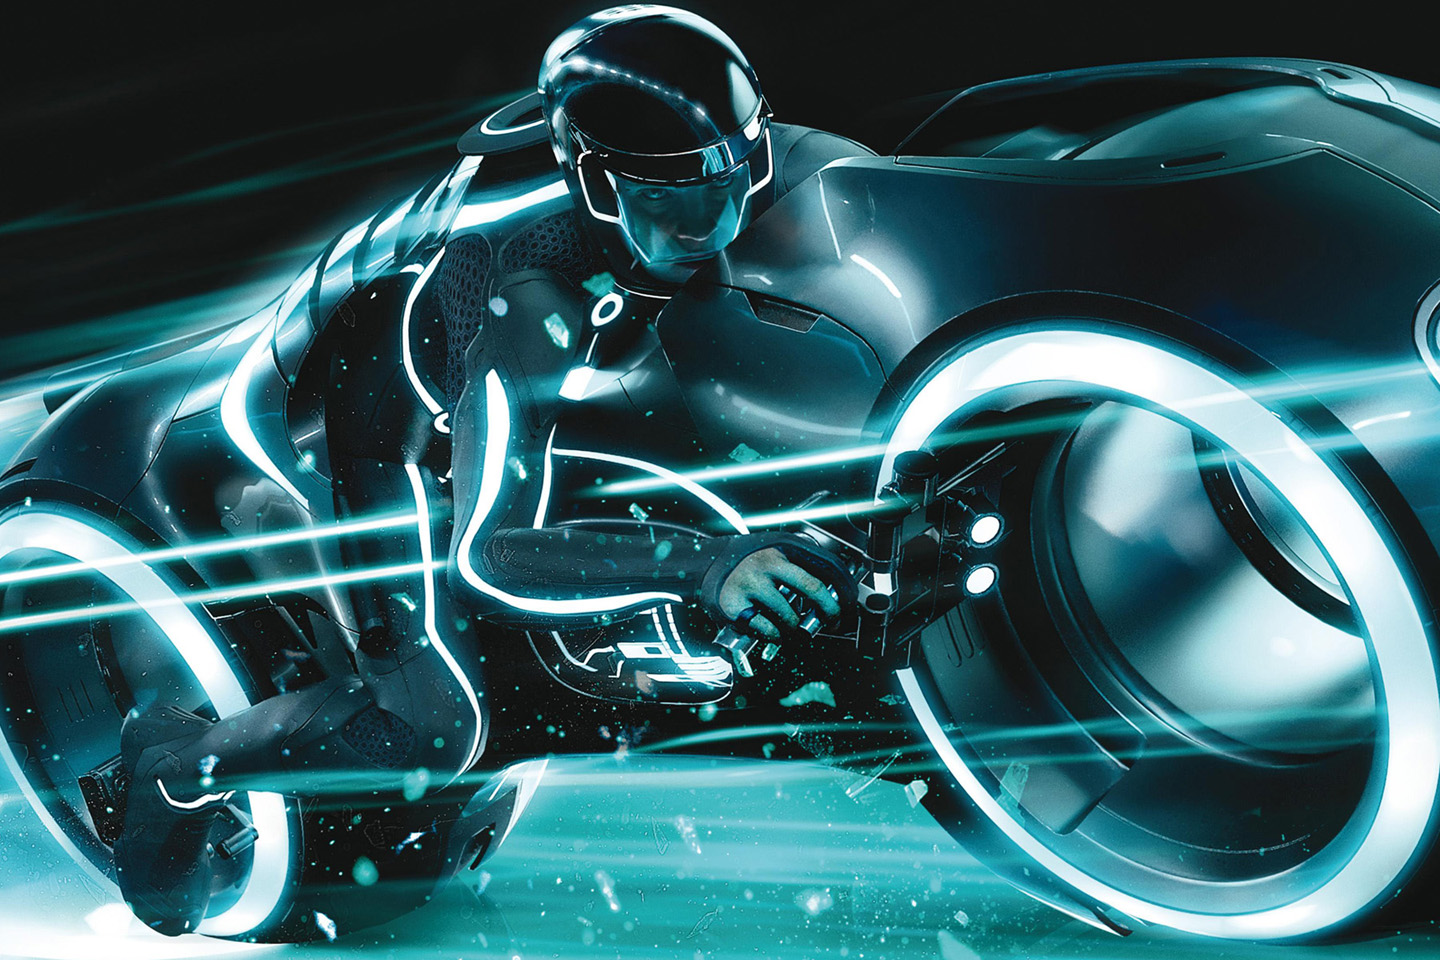 Light Cycle Rider Poster2 1440 960 Digital Citizen